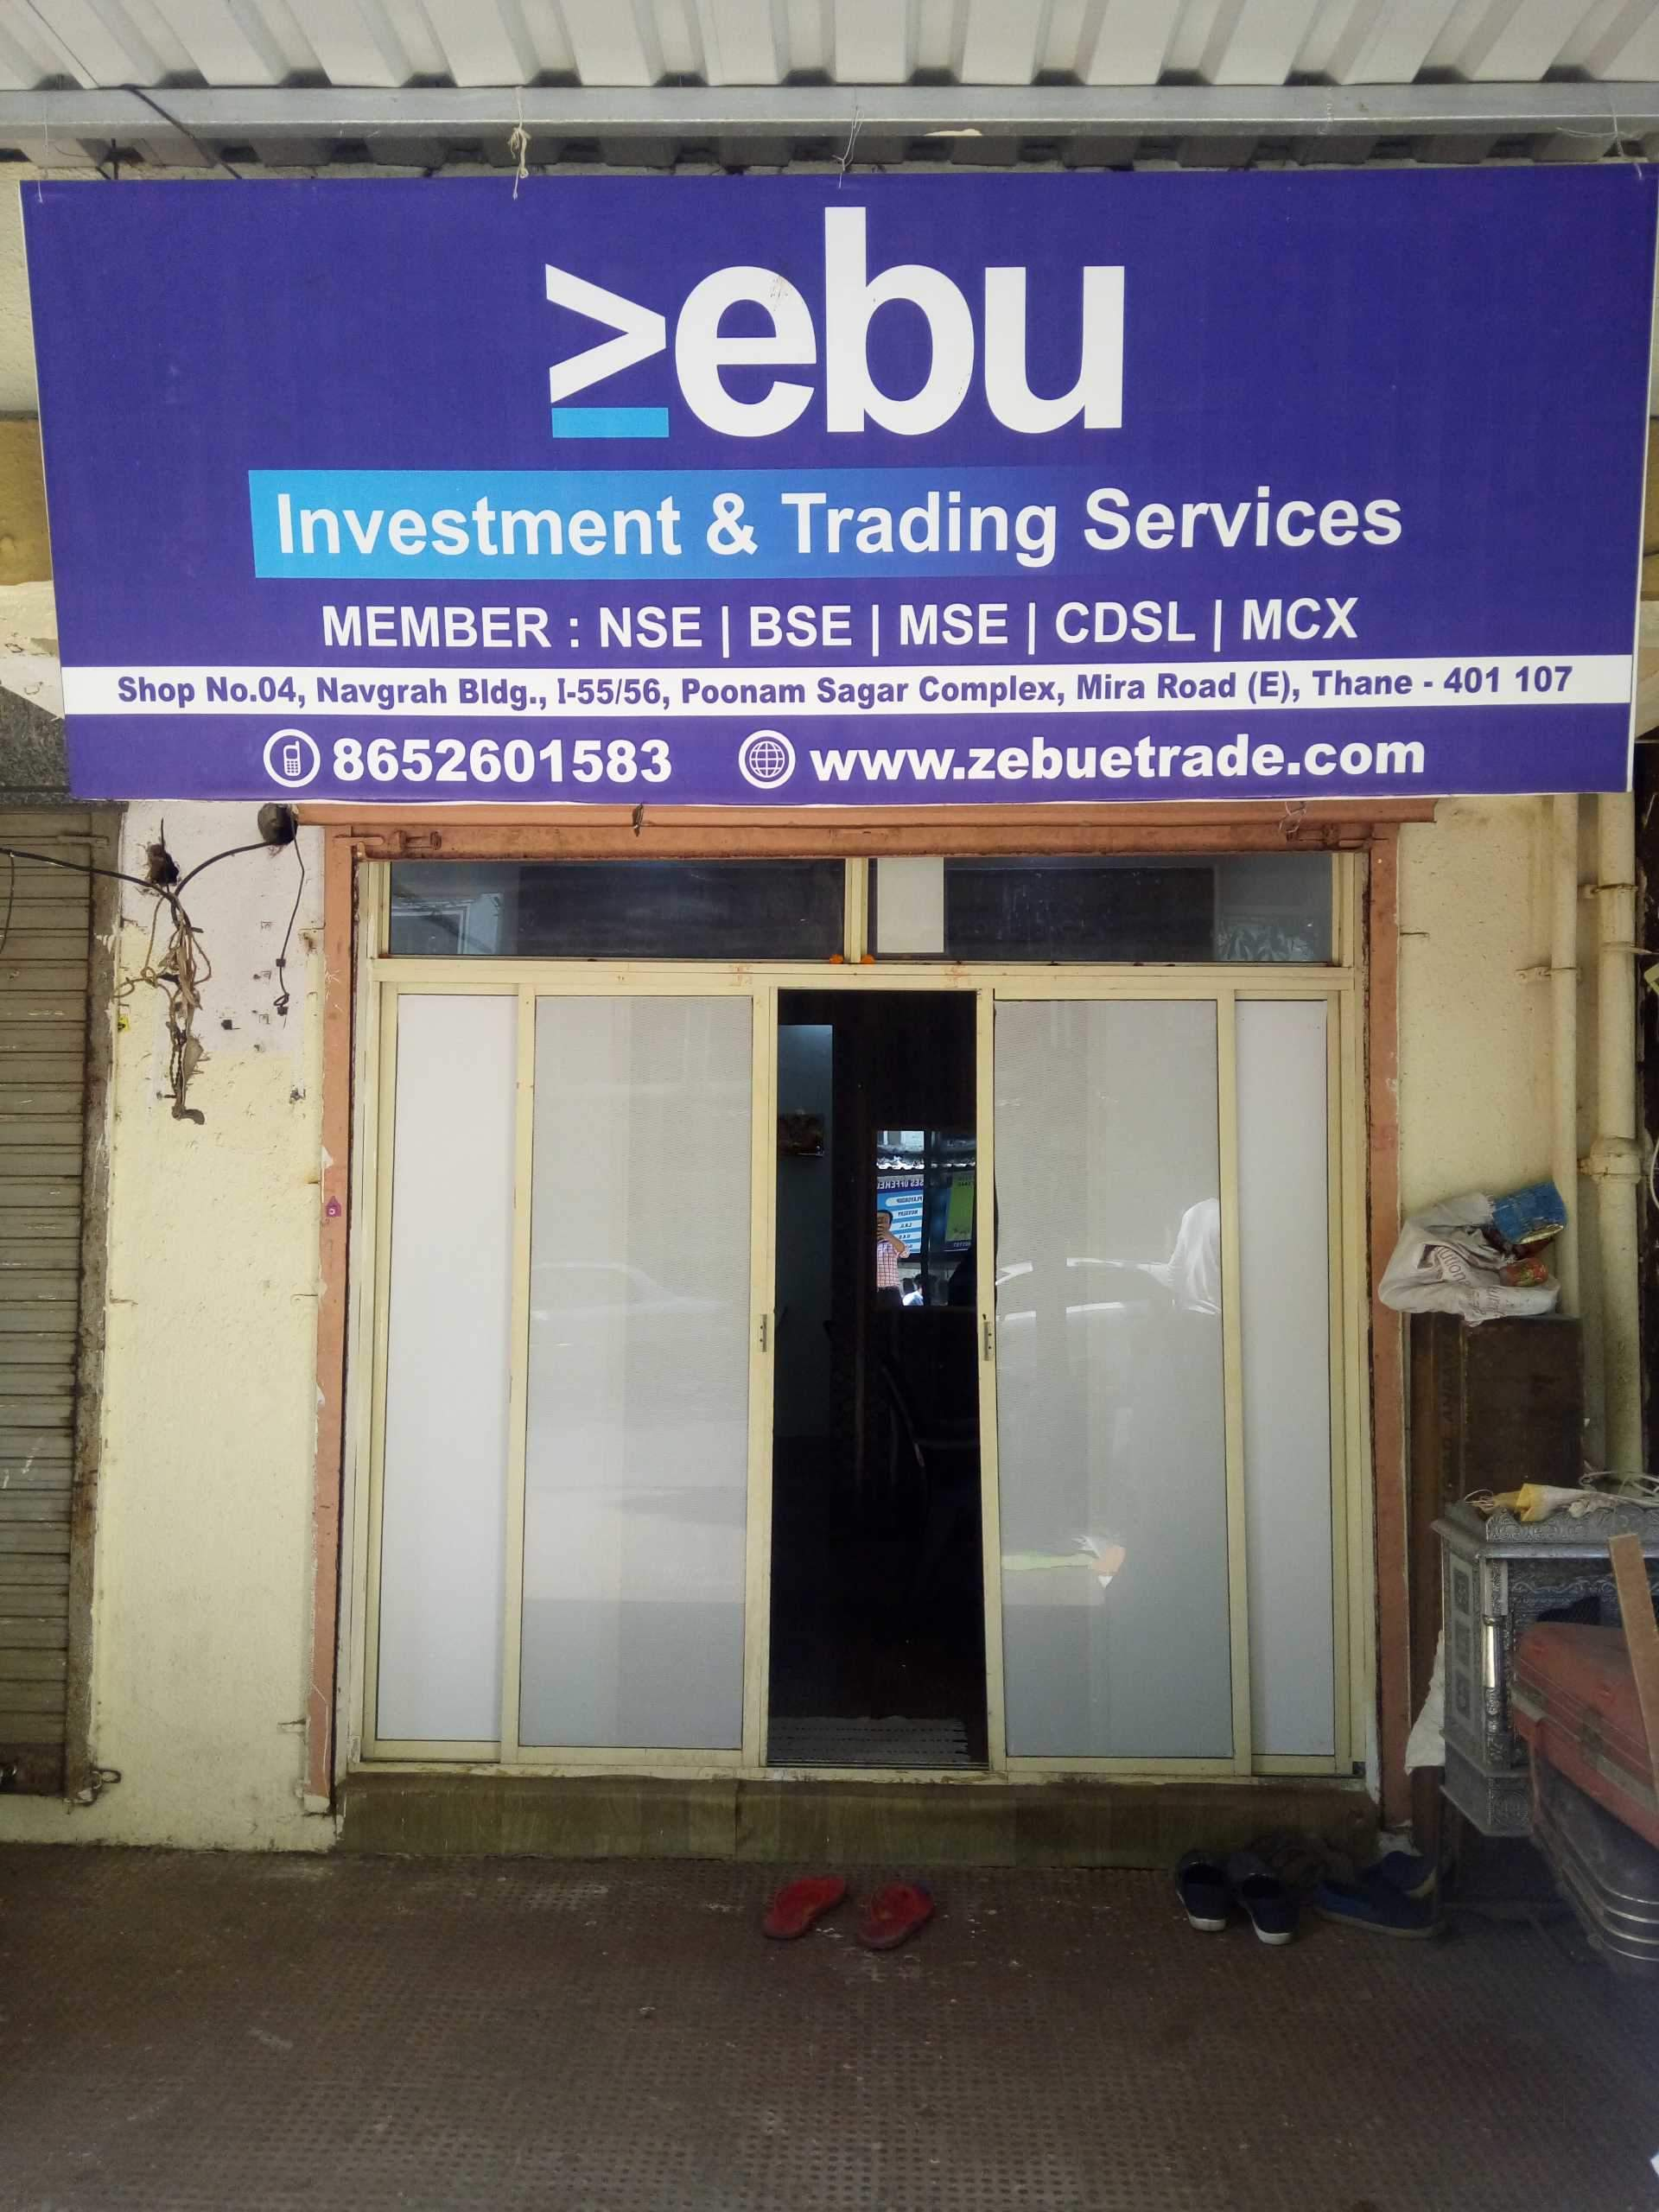 Zebu Investment & Trading Services, Mira Road - Share Brokers in Thane,  Mumbai - Justdial